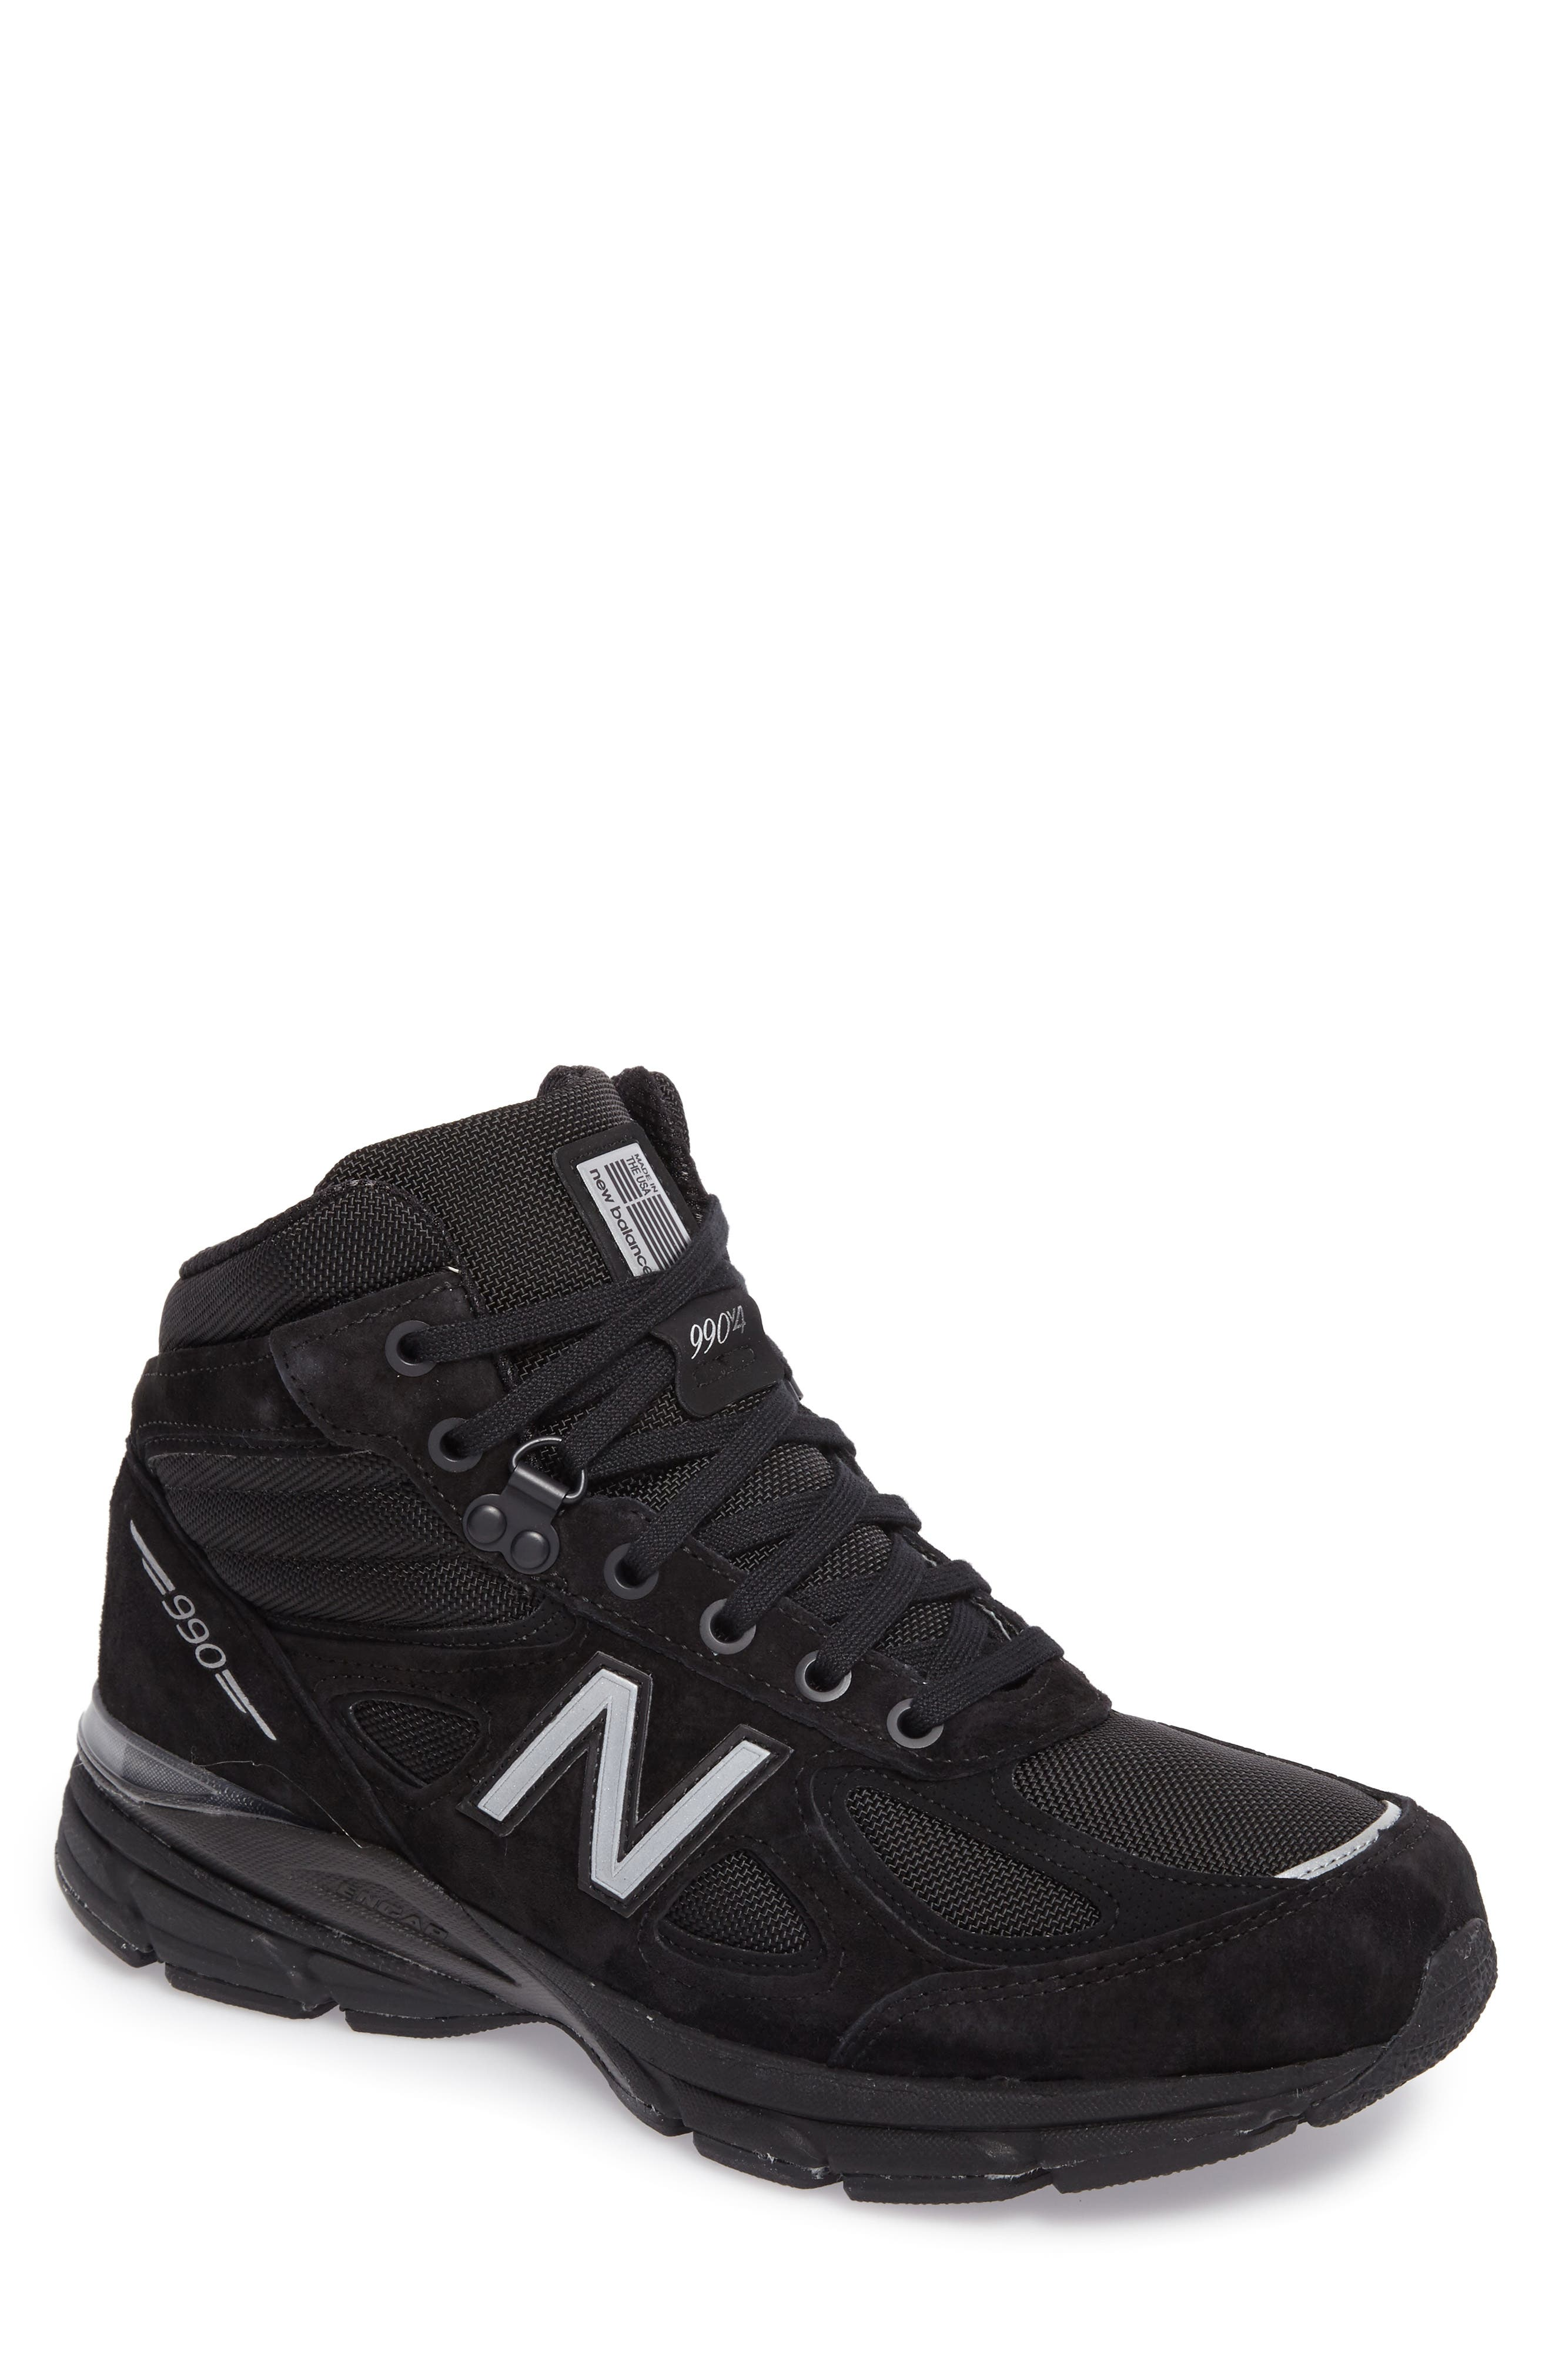 990v4 Water Resistant Sneaker Boot,                         Main,                         color, Black